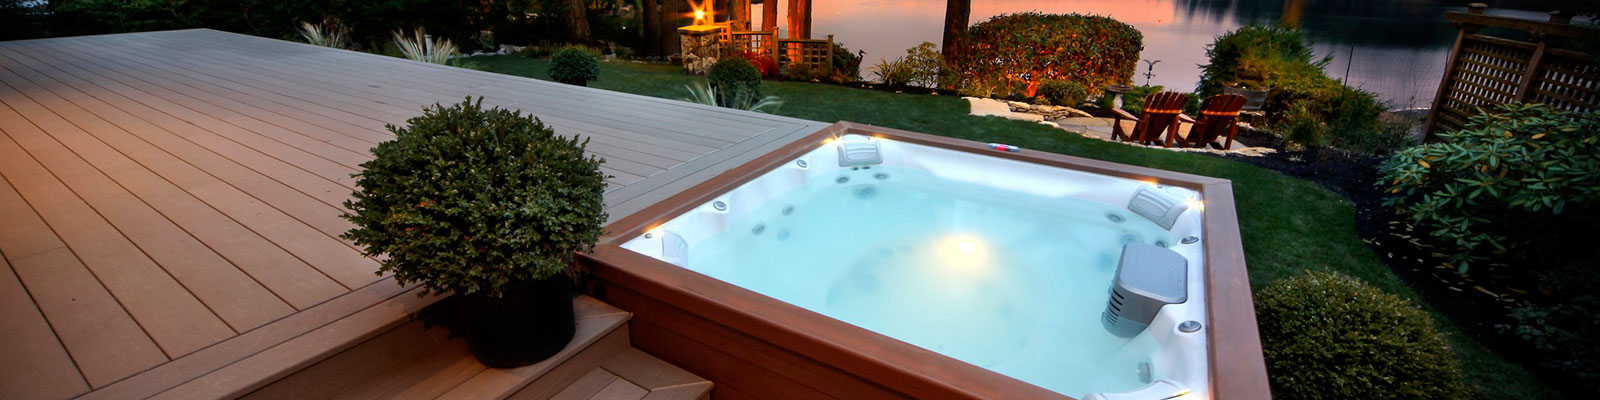 Spa Amp Hot Tub Services In Grand Rapids Mi